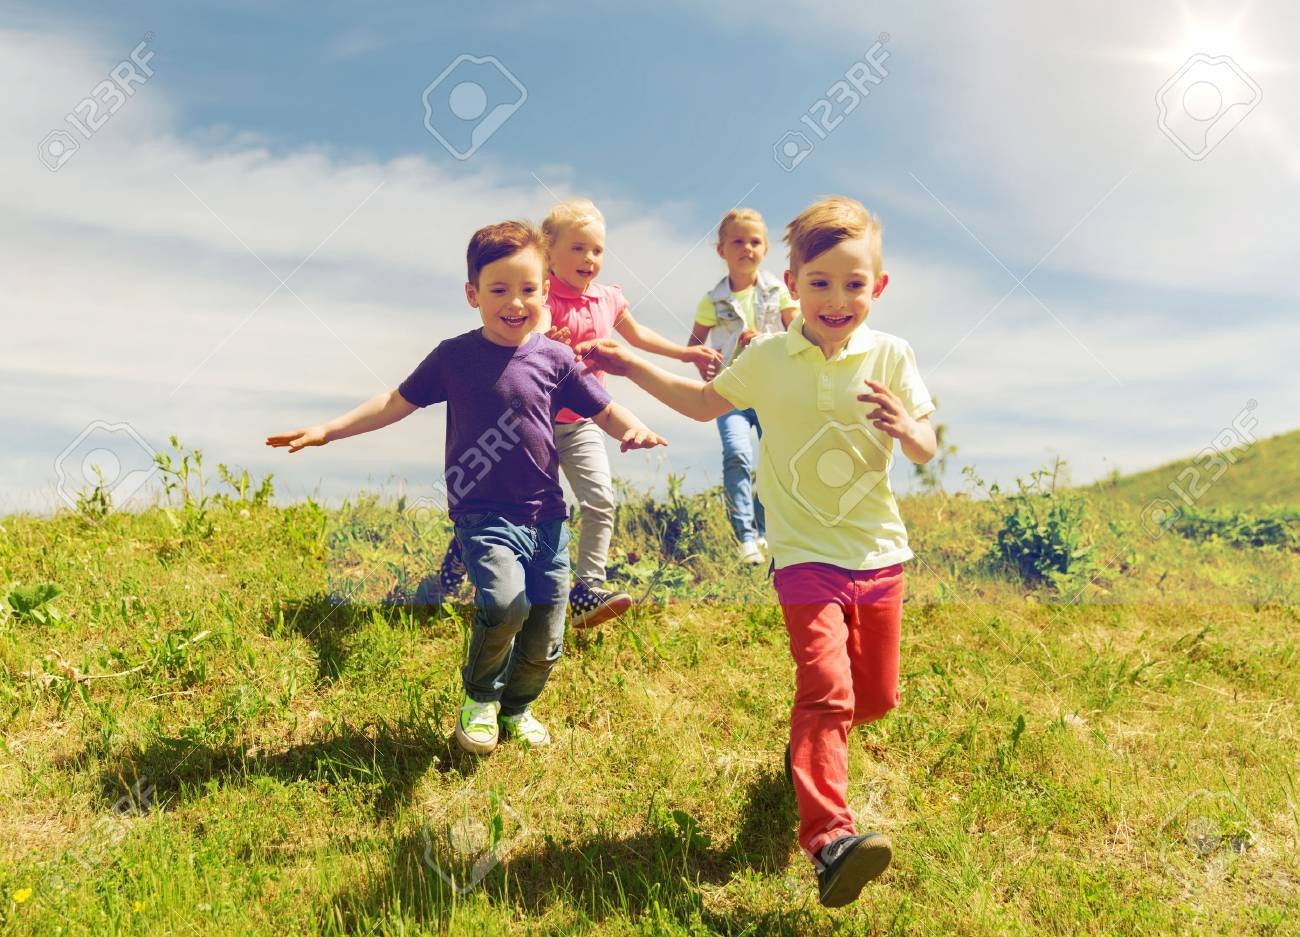 summer, childhood, leisure and people concept - group of happy kids playing tag game and running on green field outdoors - 63064321